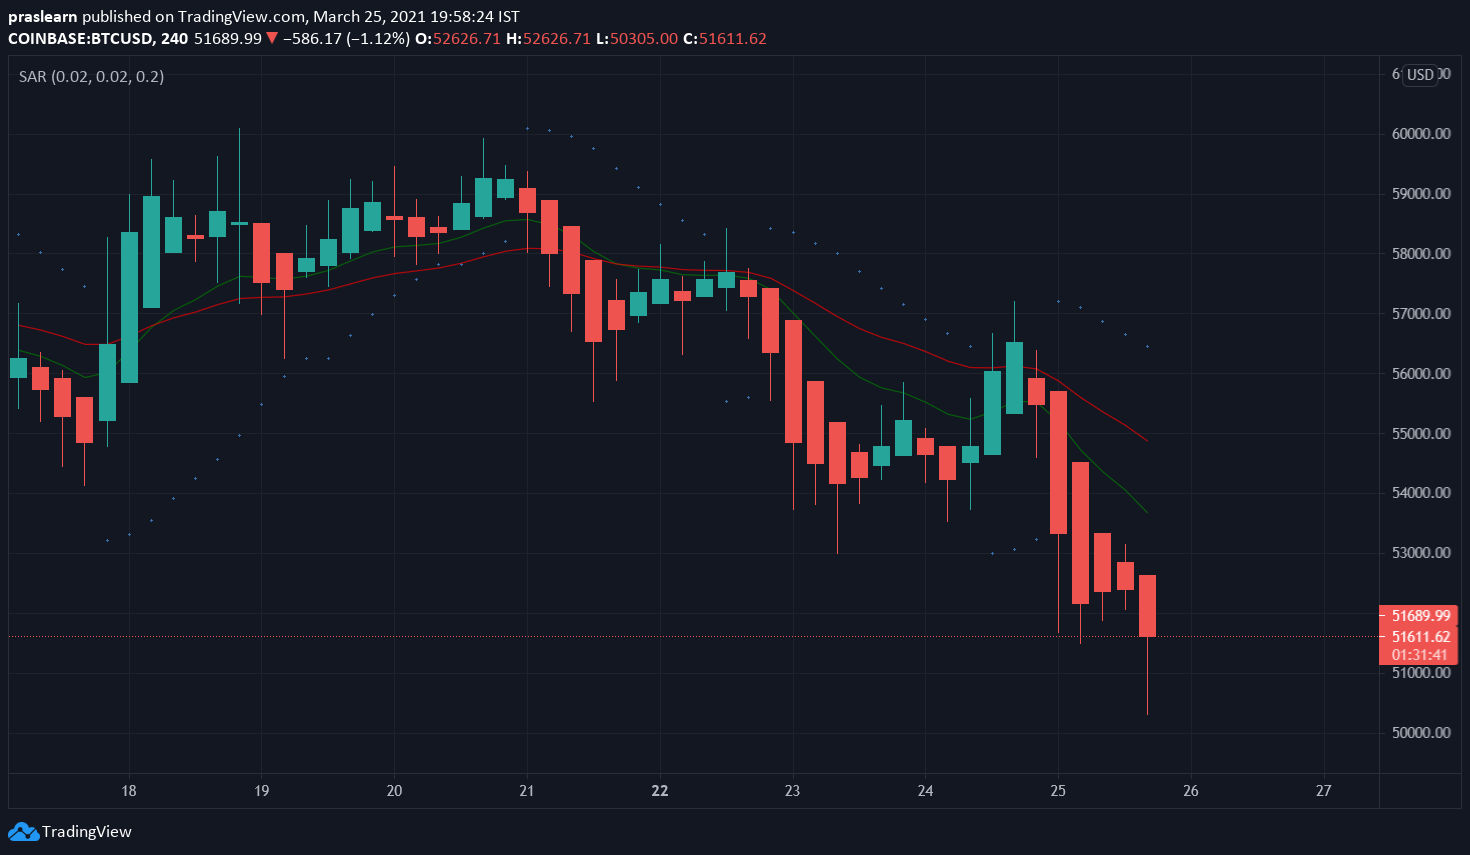 Bitcoin Price: BTC/USD 4-hour chart showing previous price-action of BTC – TradingView